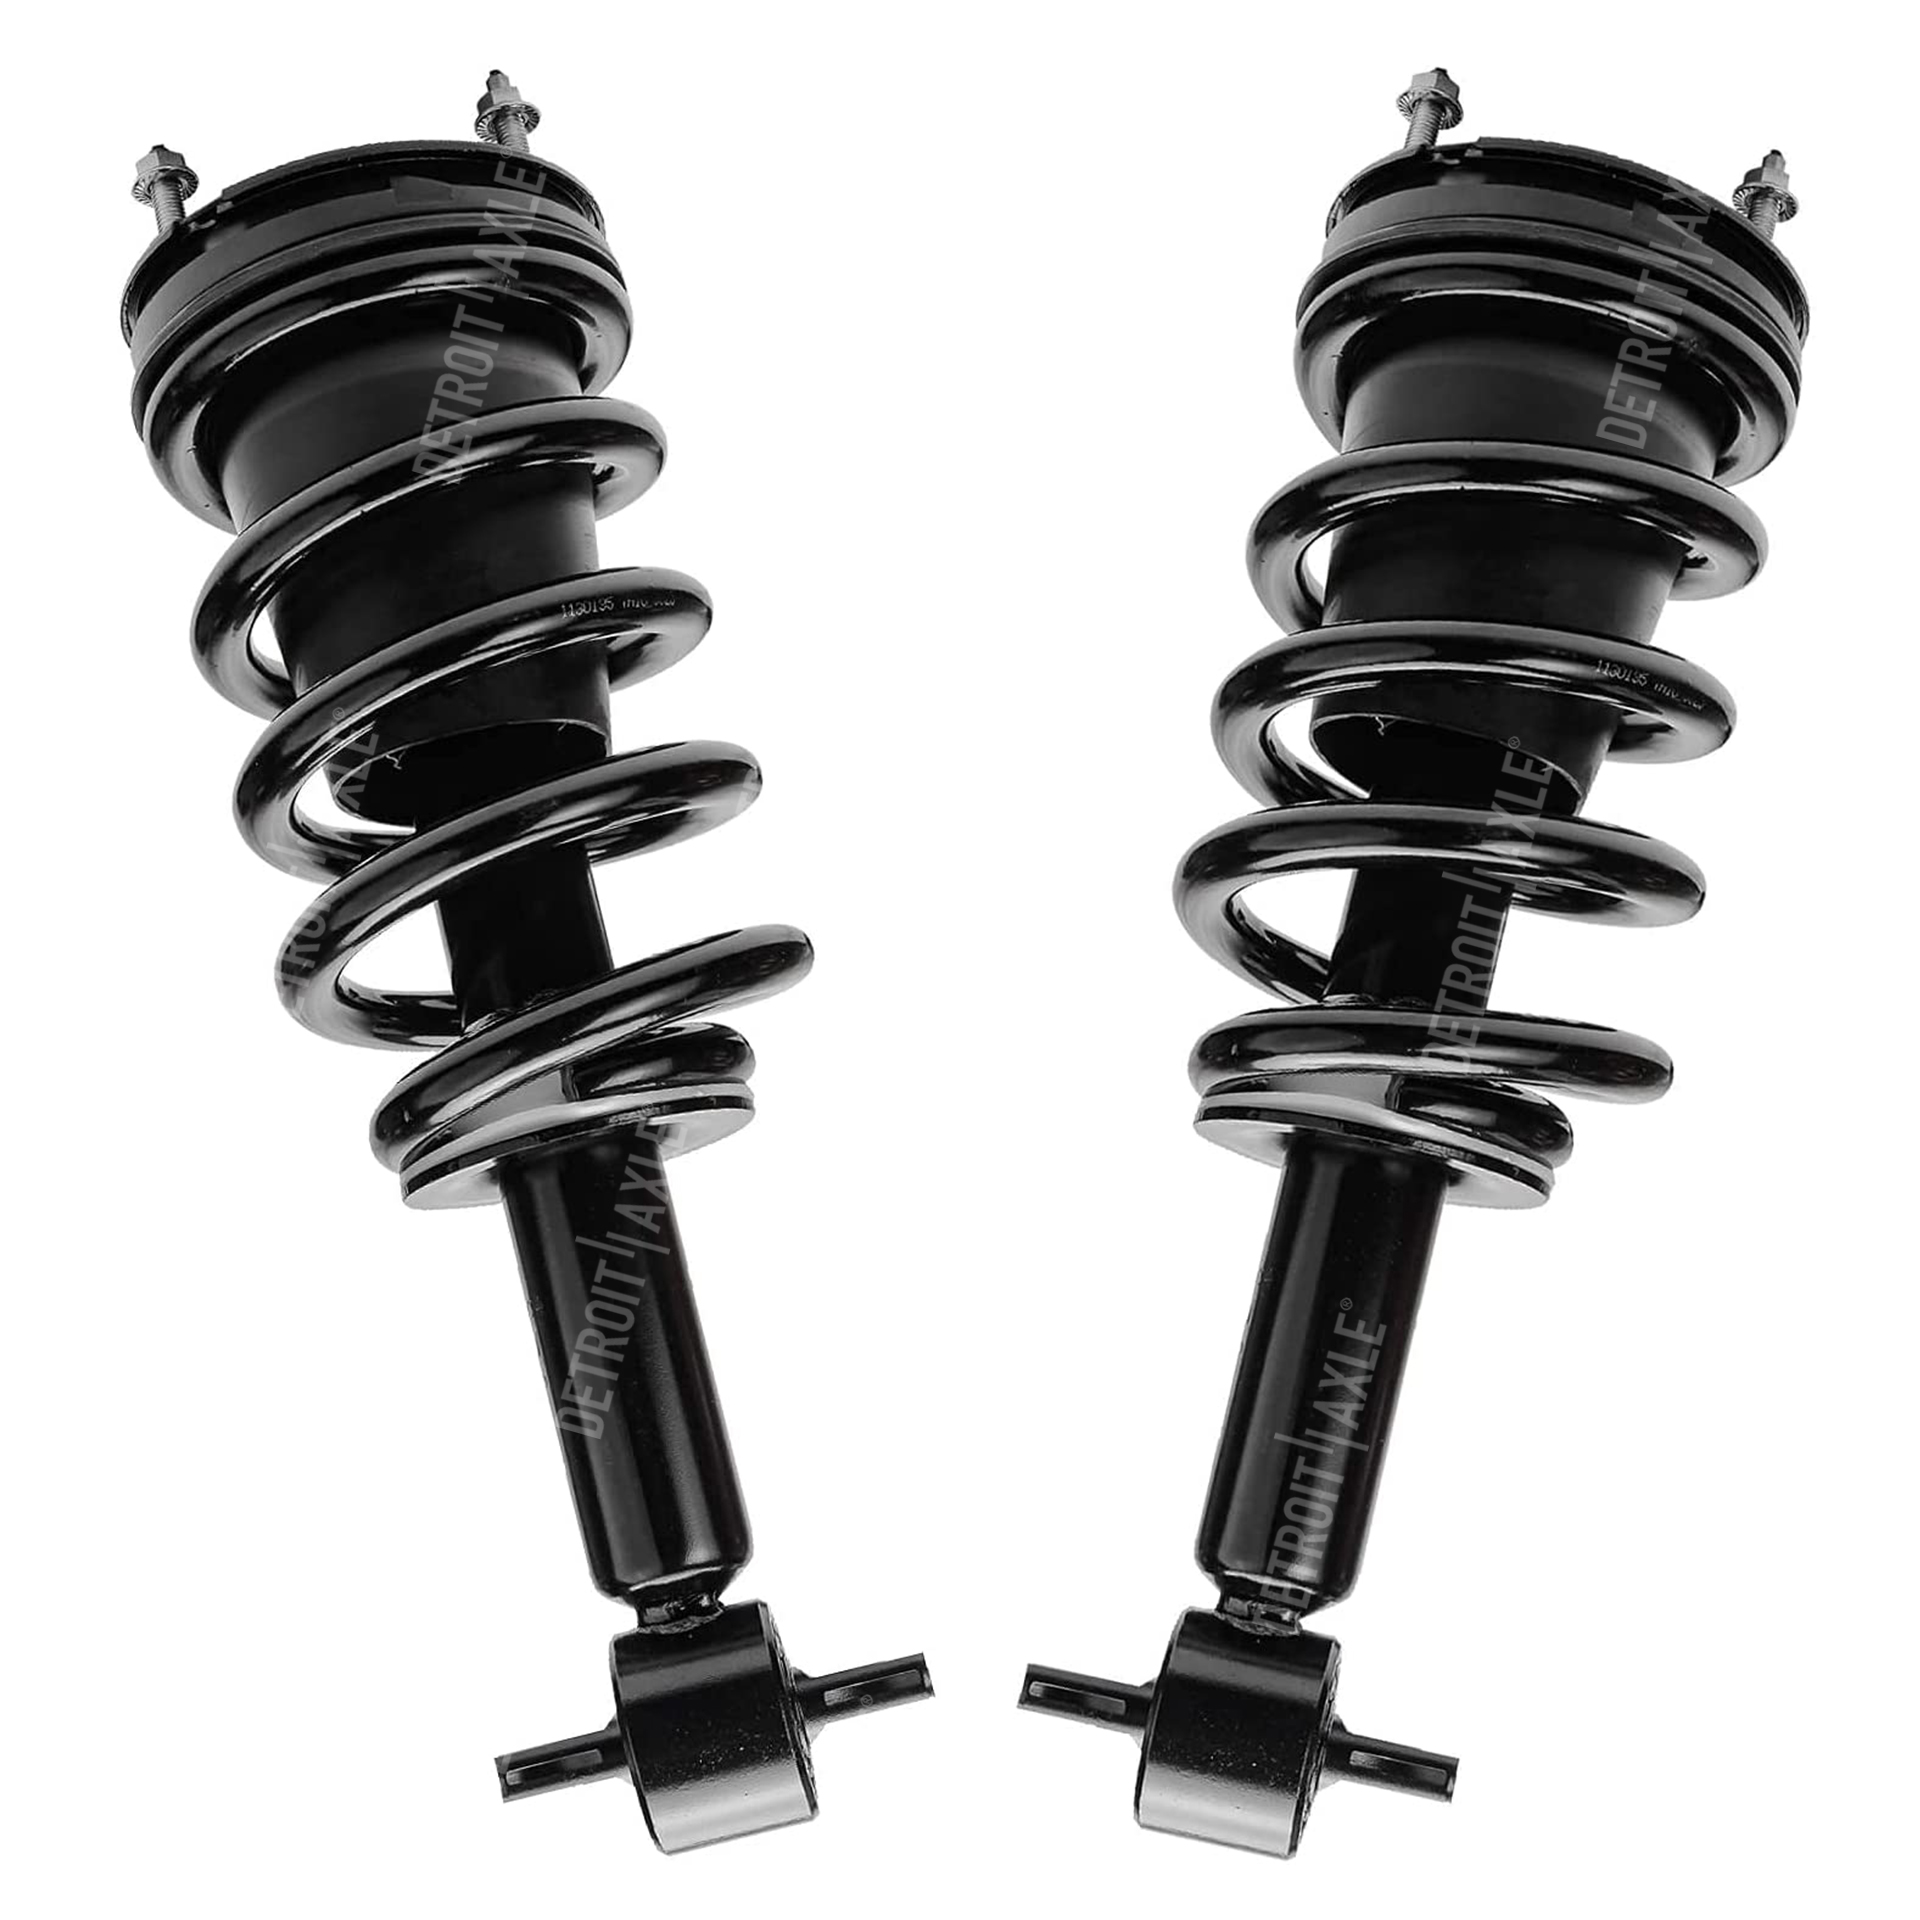 Pair (2) Front Left and Right Ready Strut w/Coil Spring Assemblies - for 2007-2011 Chevrolet & GMC Silverado Sierra 1500 - EXCLUDES ELECTRONIC SUSPENSION AND LIFT KITS